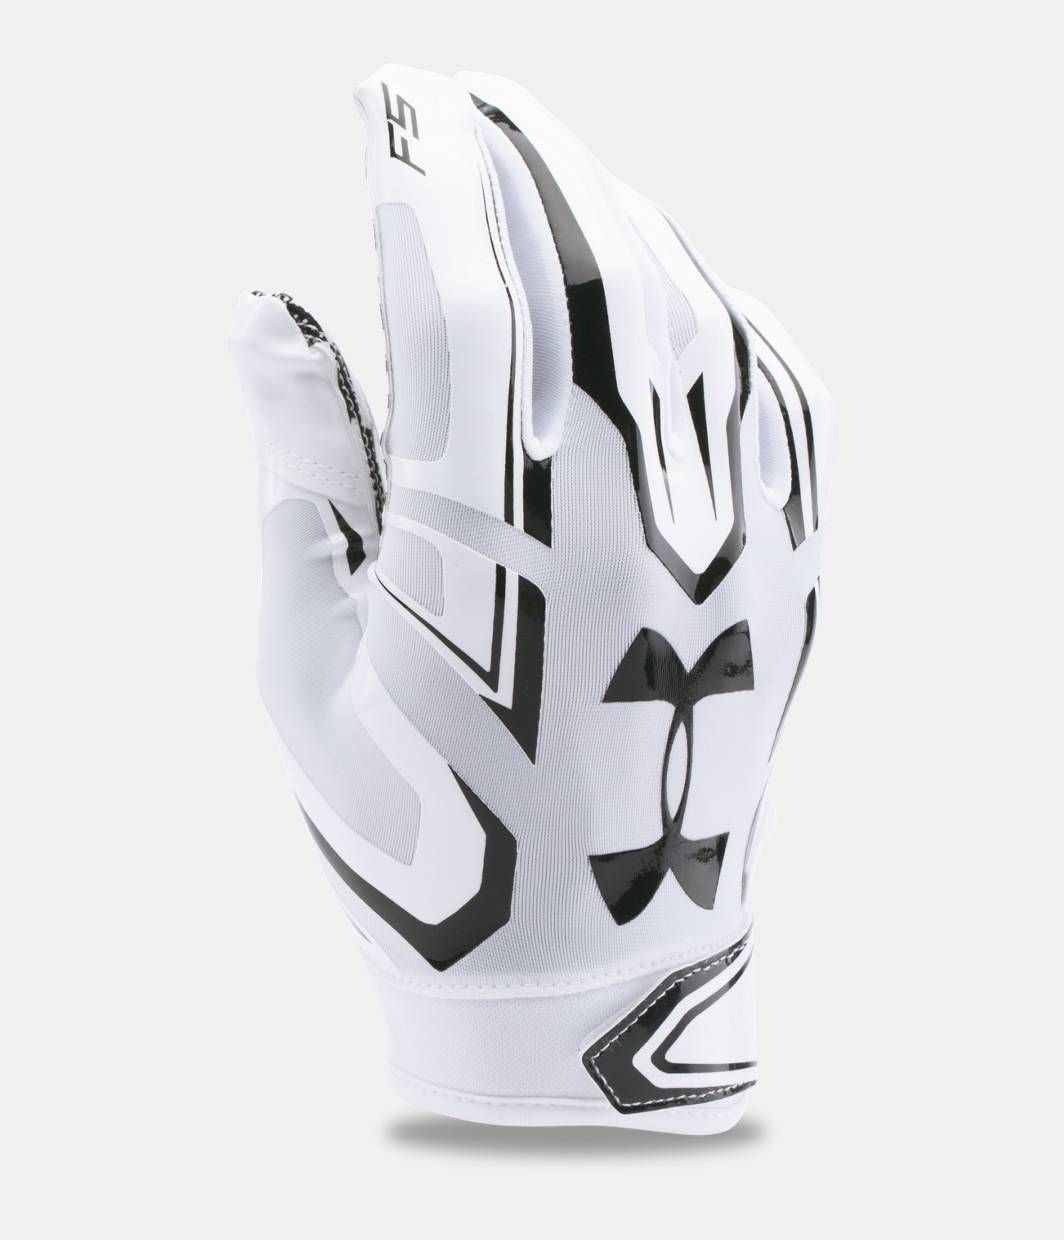 Under armour leather work gloves - Men S Ua F5 Football Gloves Under Armour Us